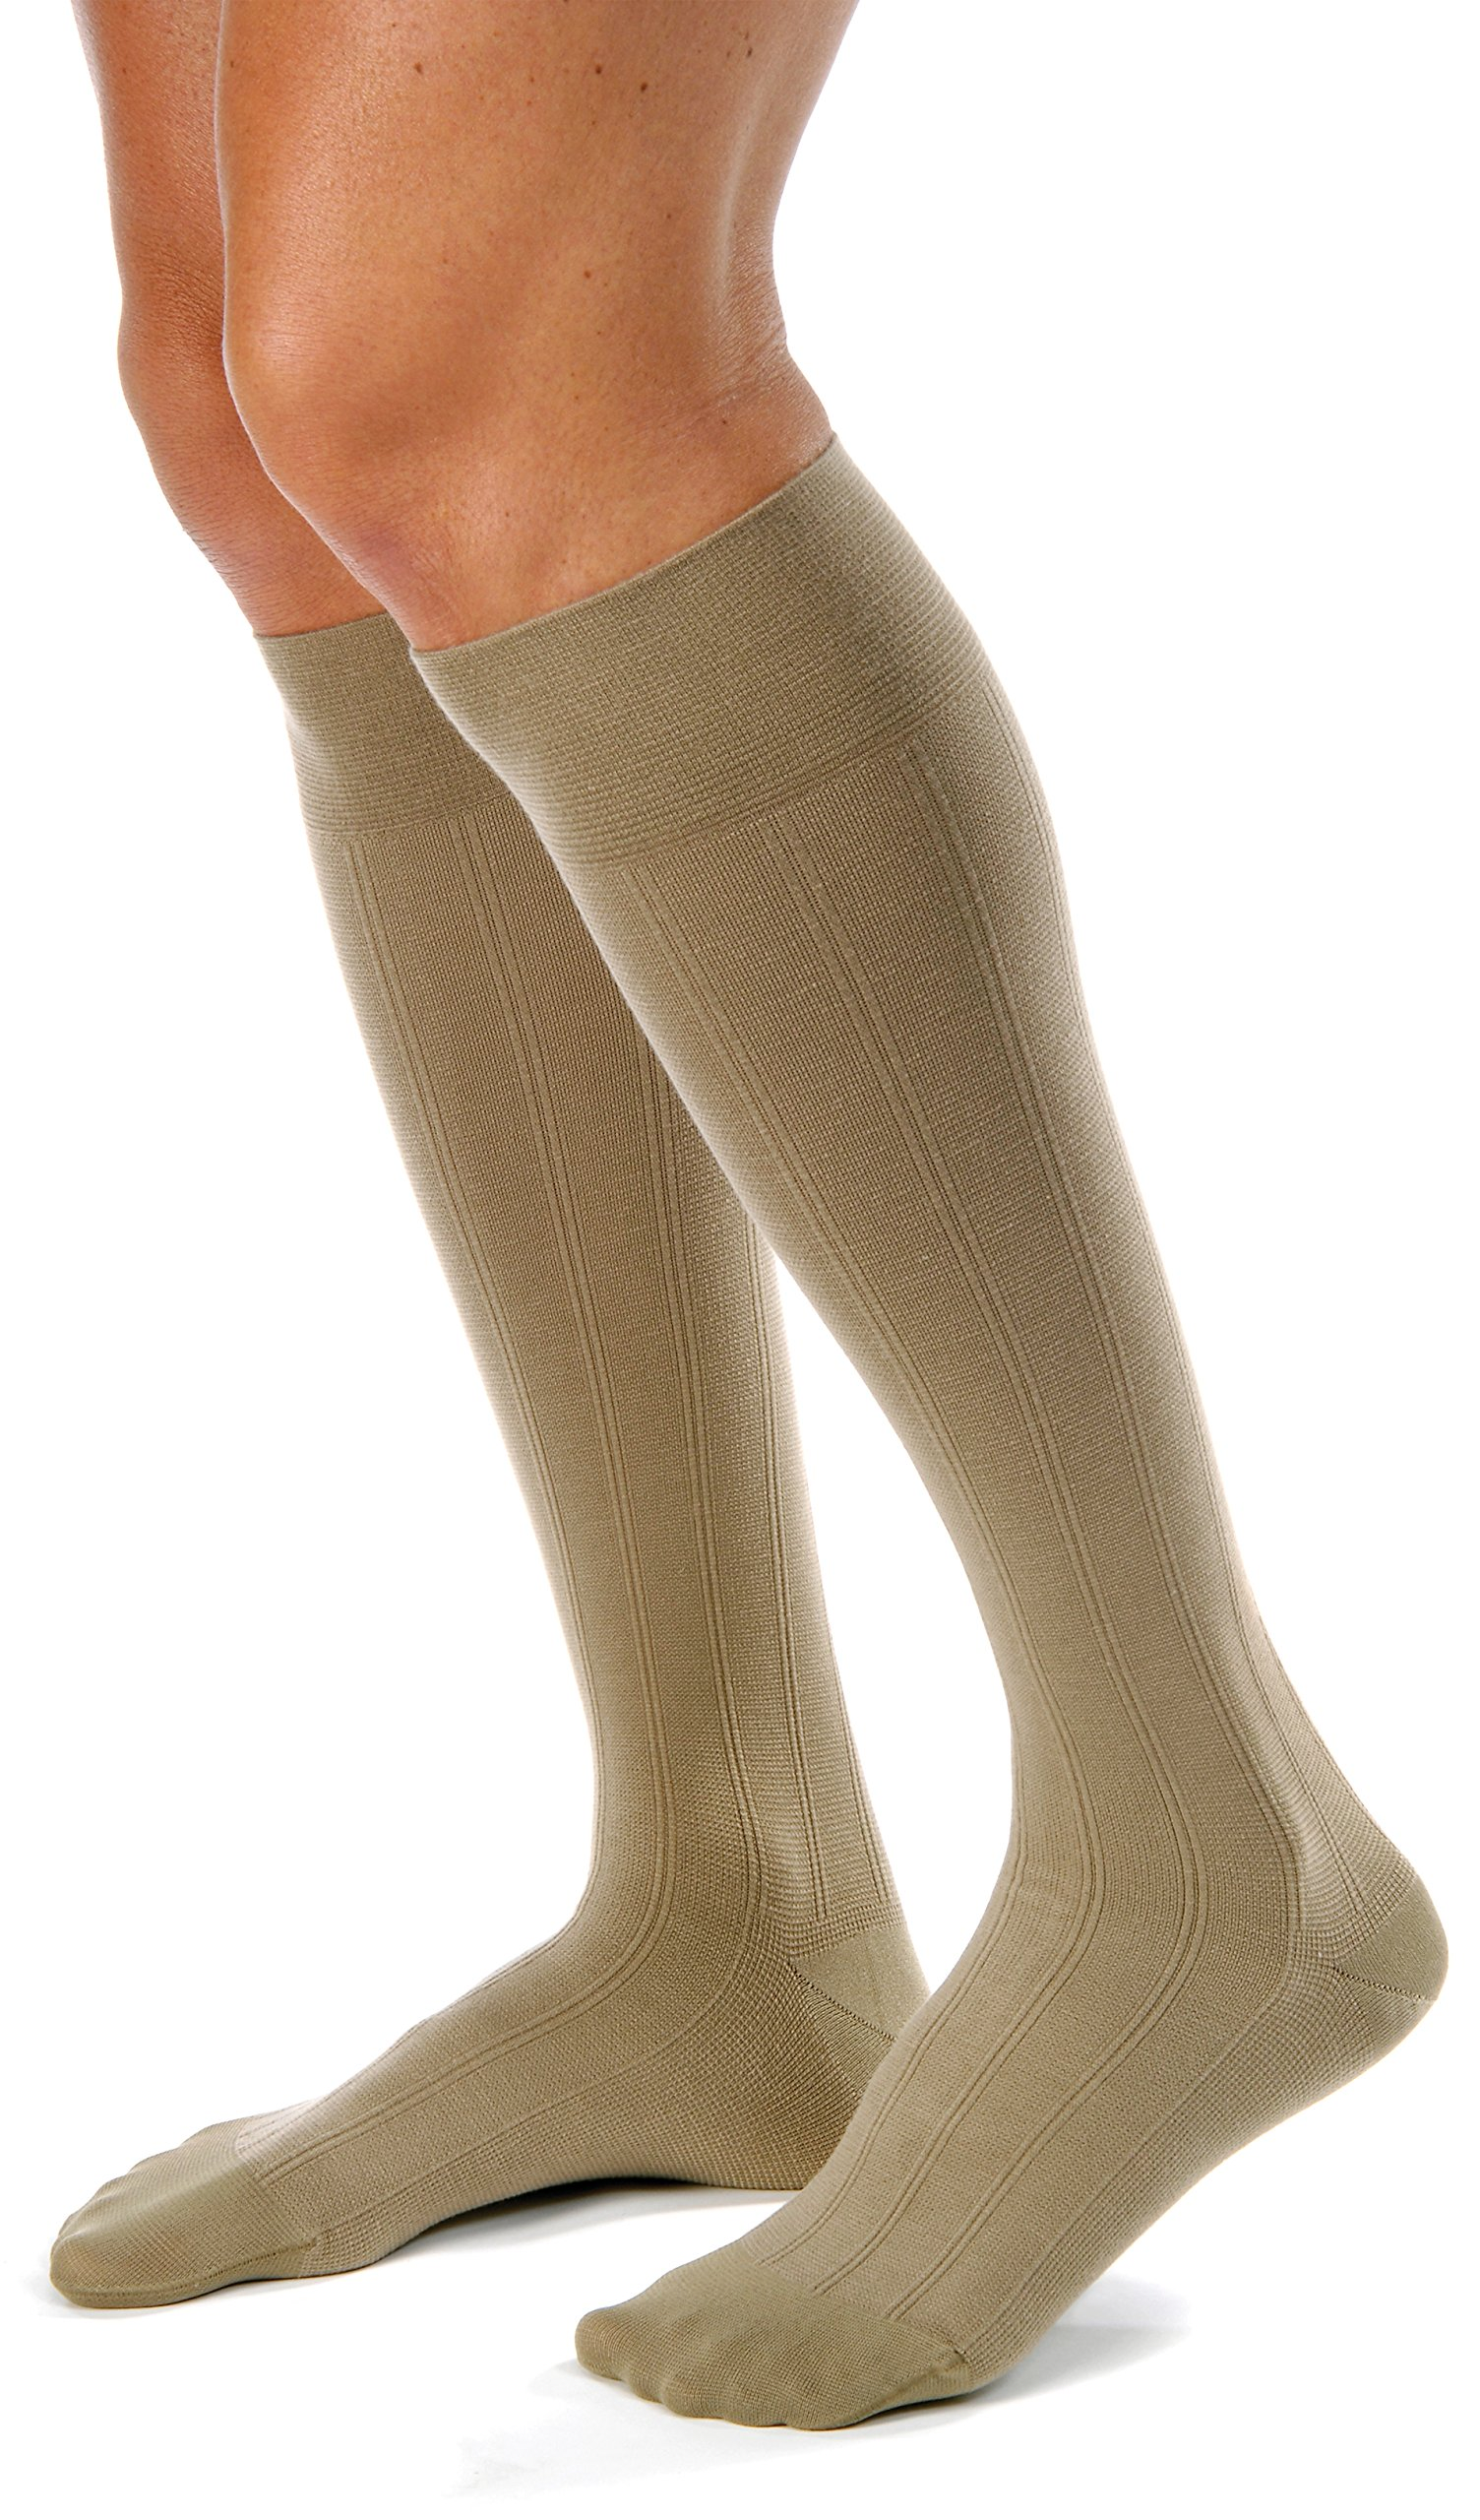 BSN Medical 113125 JOBST Men's Casual Socks with Closed Toe, Knee High, 20-30 mmHg, Medium, Khaki by BSN Medical/Jobst